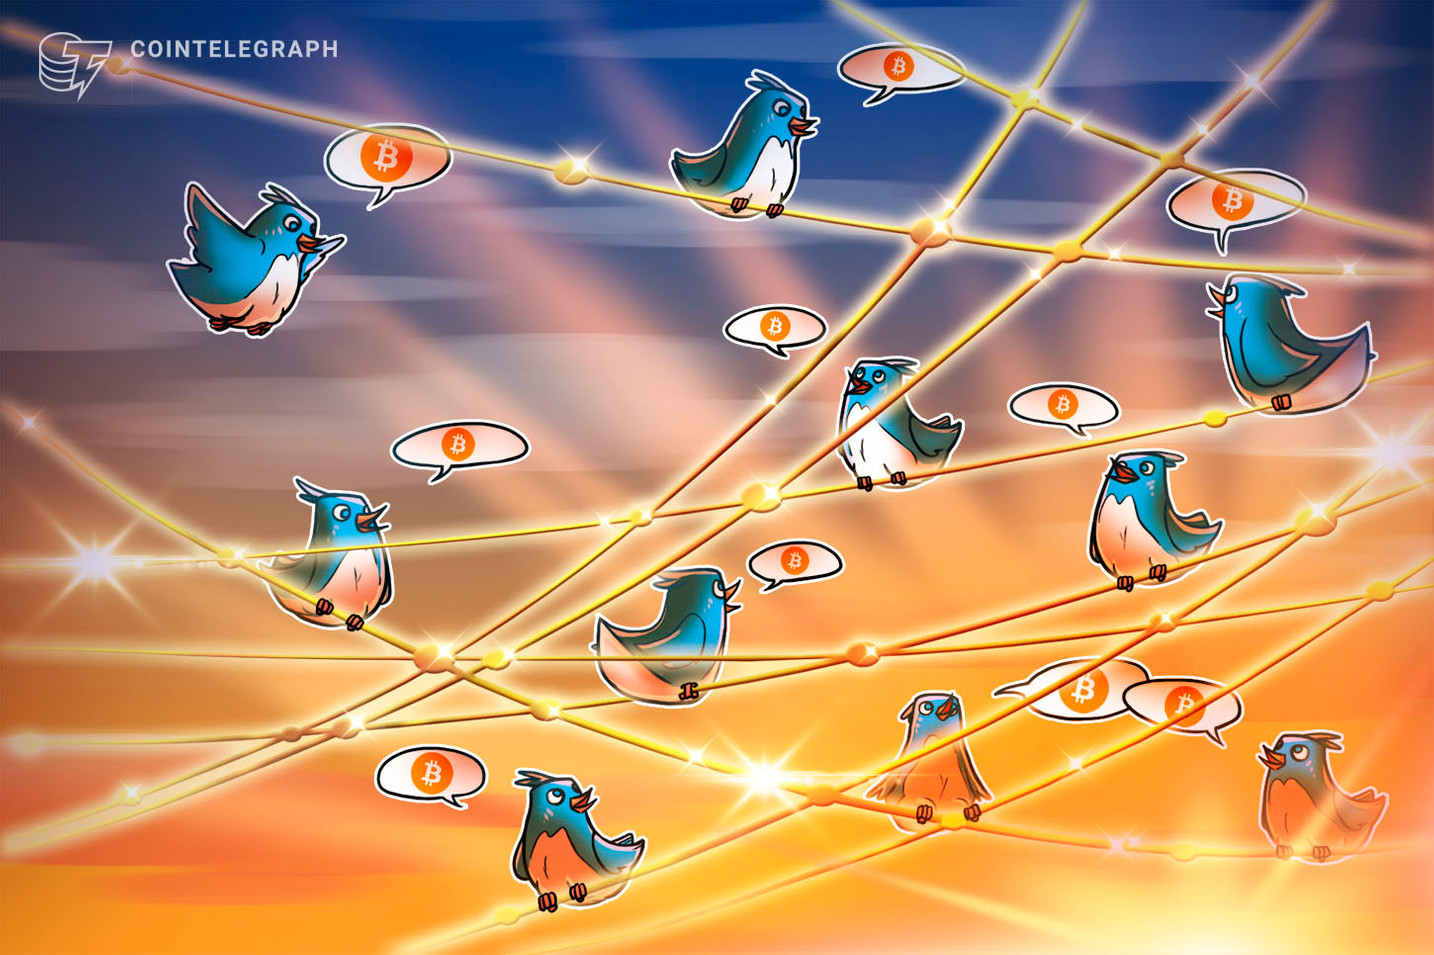 BTC Halving Tweets Show Investors Remain Bullish on Bitcoin Price